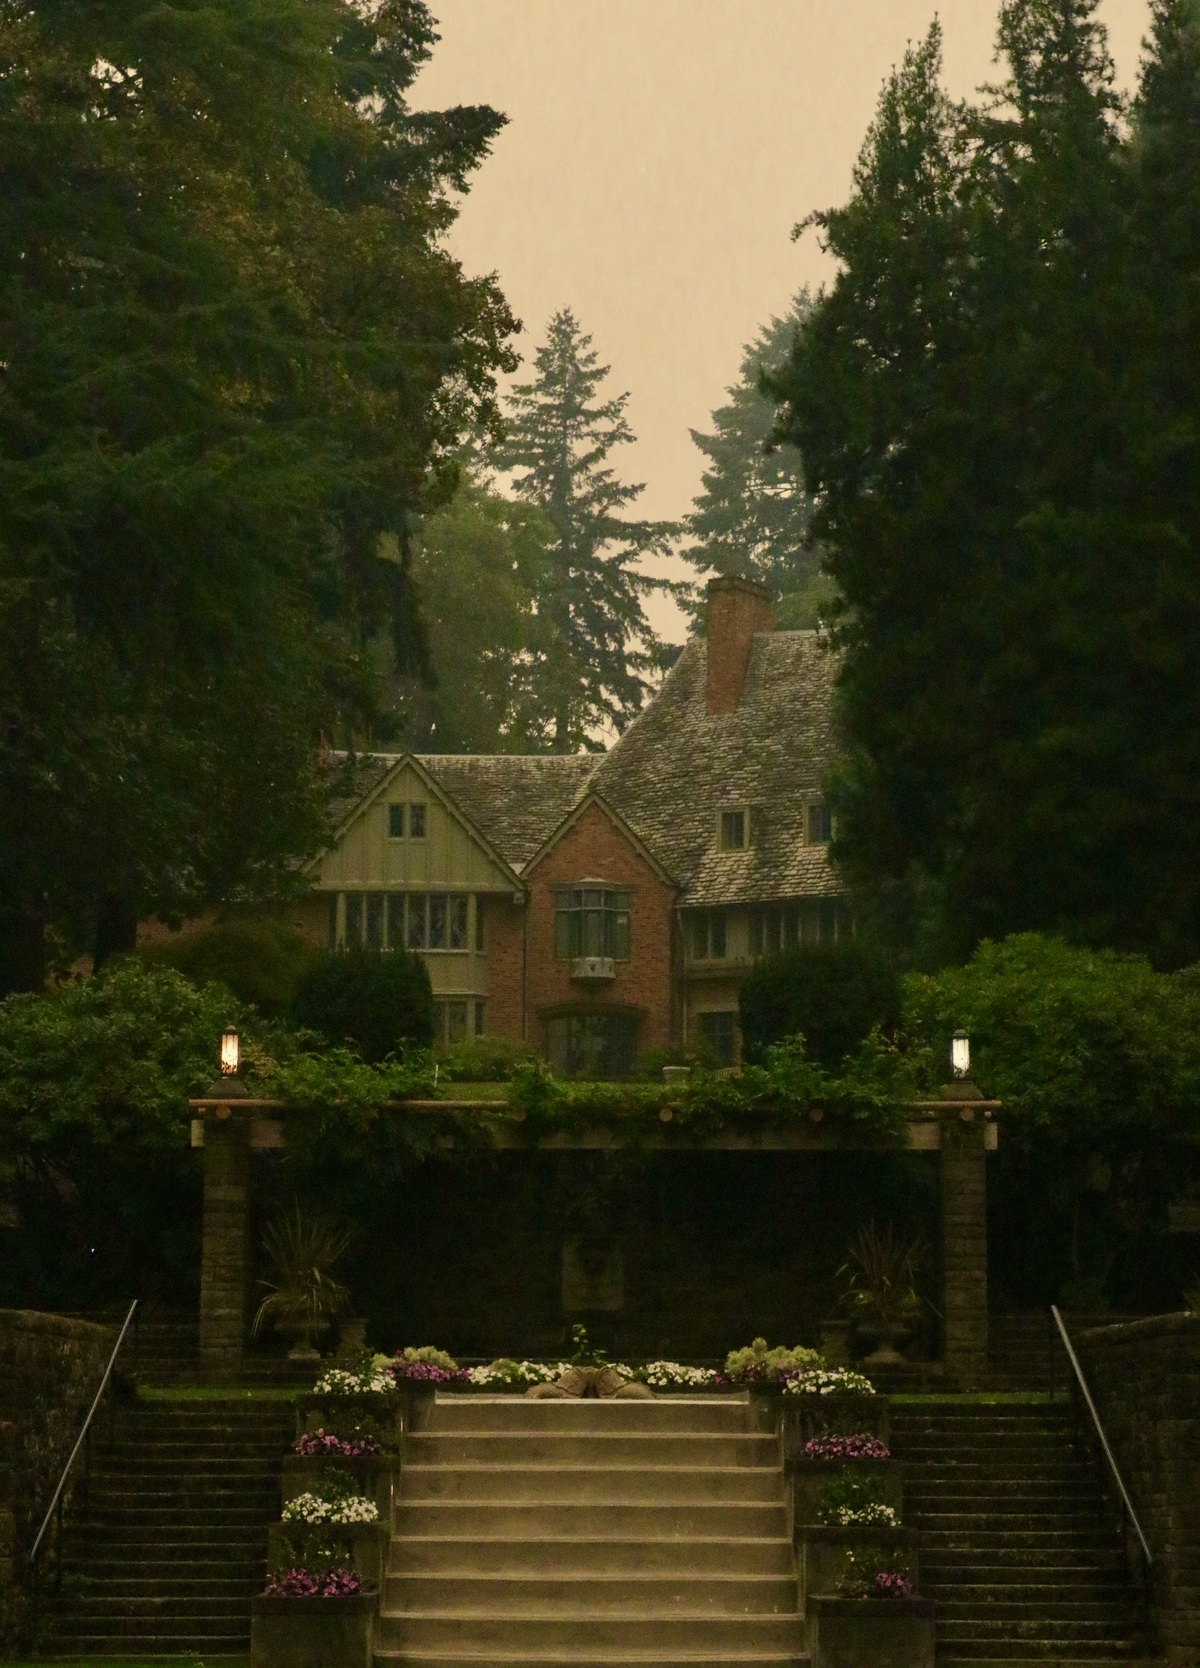 Photograph of Frank Manor House from the perspective of the Reflecting Pool in the foreground and a smoke-filled sky in the background.